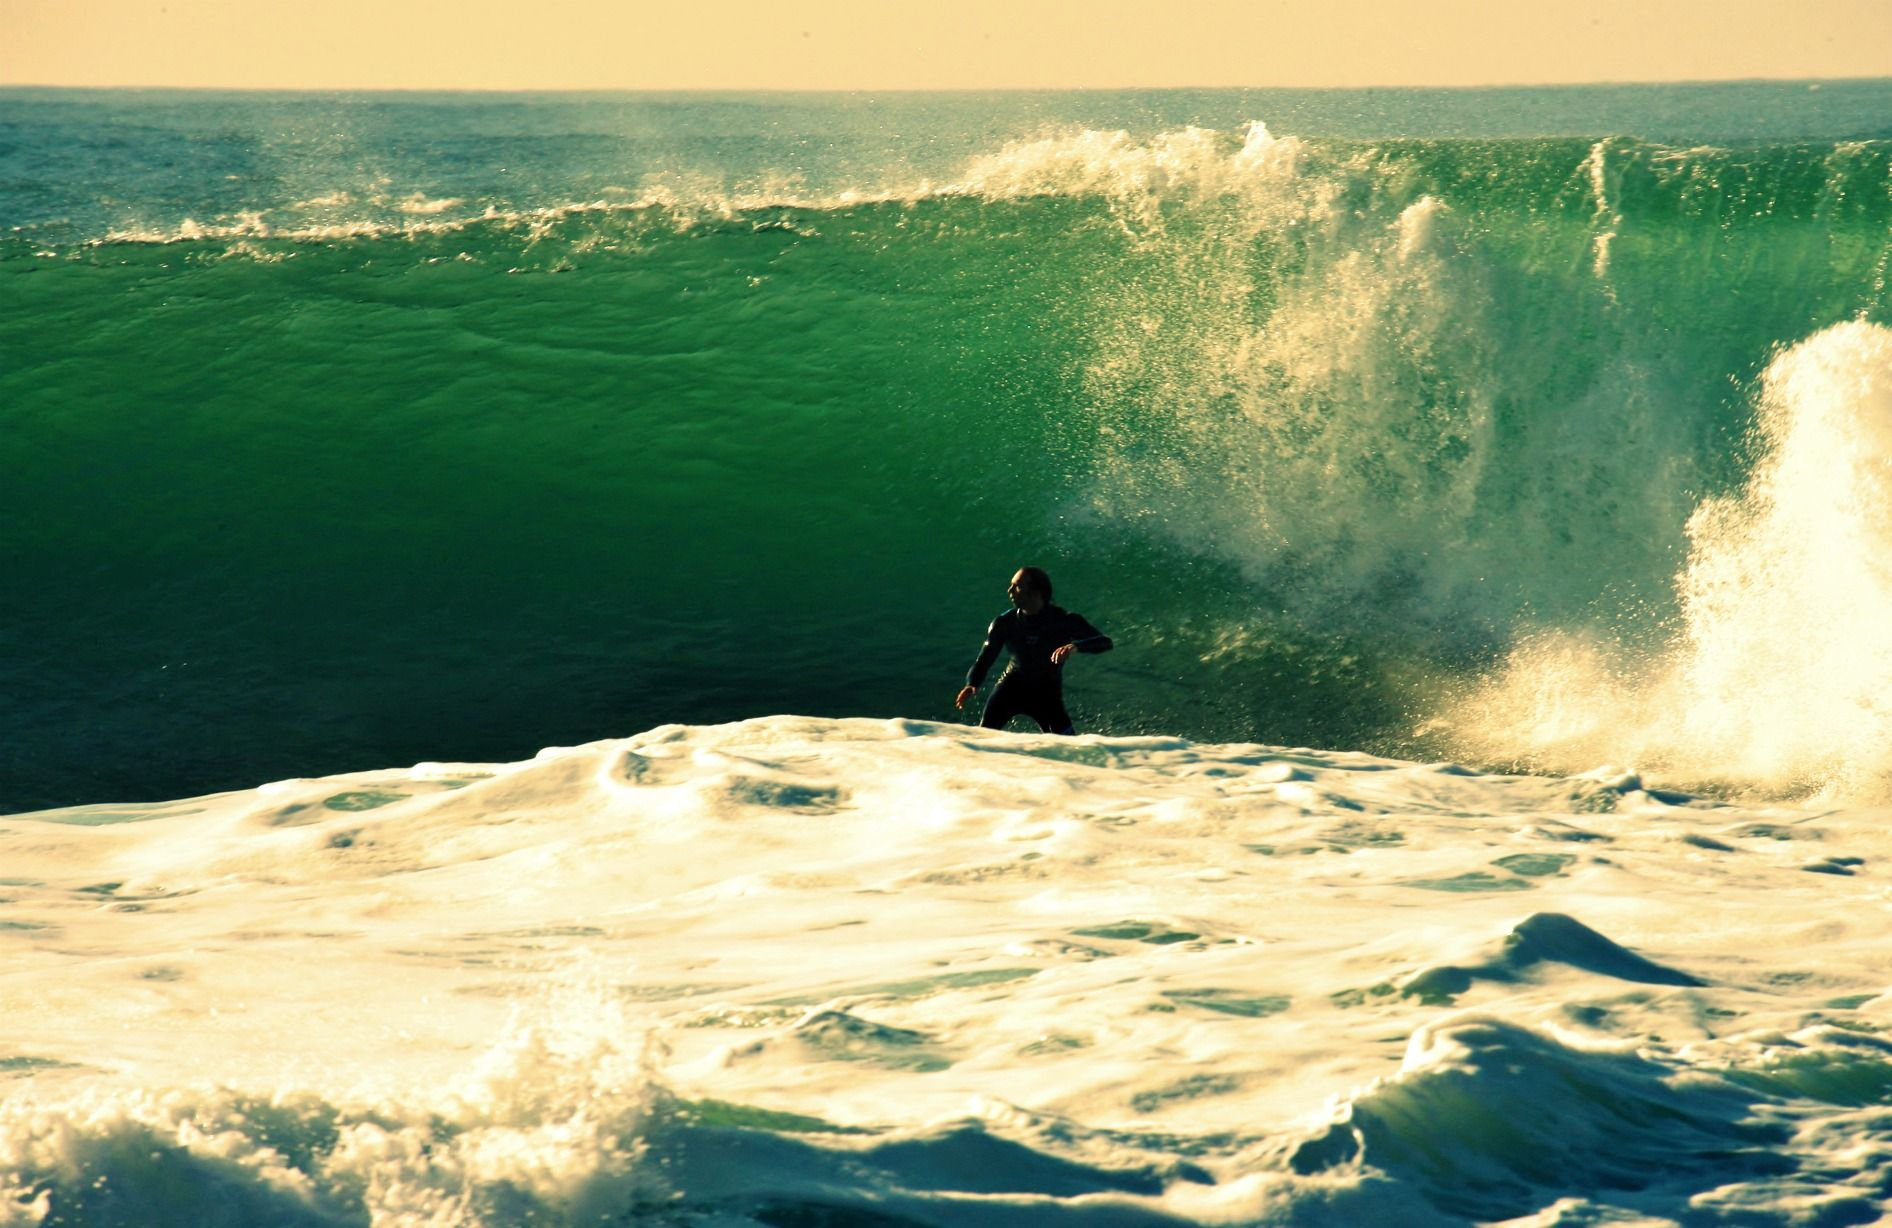 Surfing in Coxos - Ericeira - Portugal